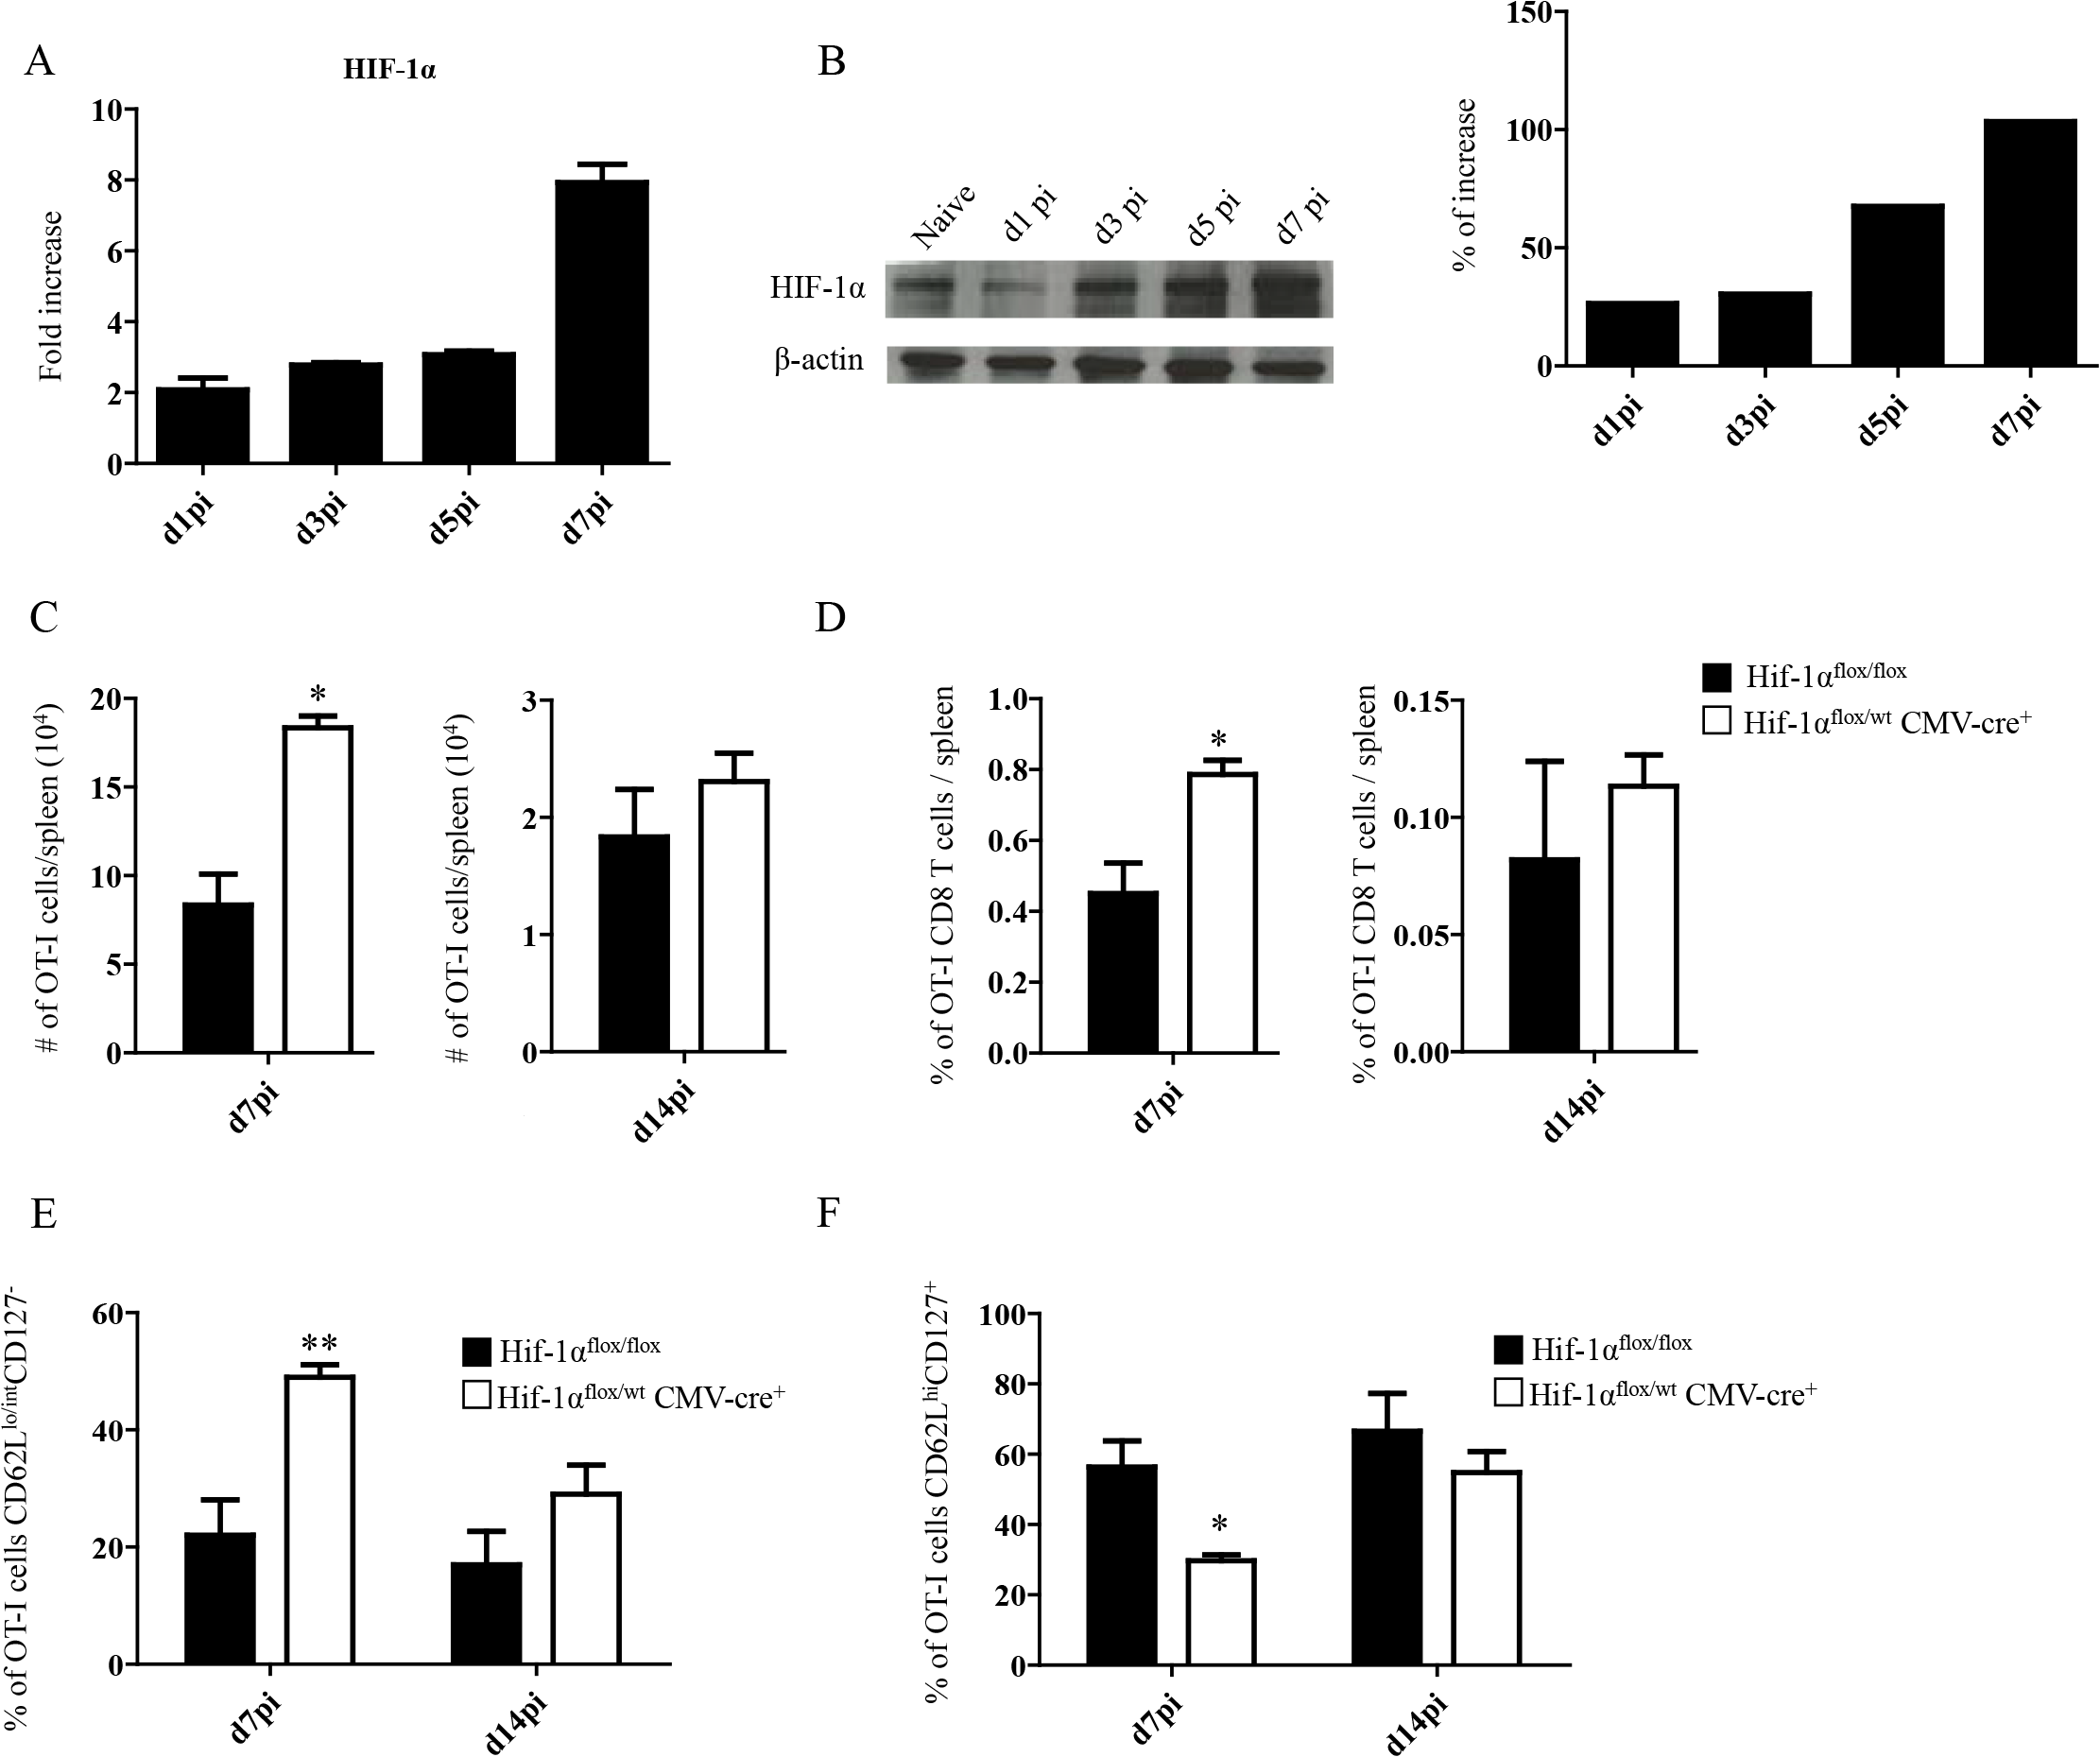 Upregulation of HIF-1α in the spleen restricts CD8<sup>+</sup> T cell expansion.